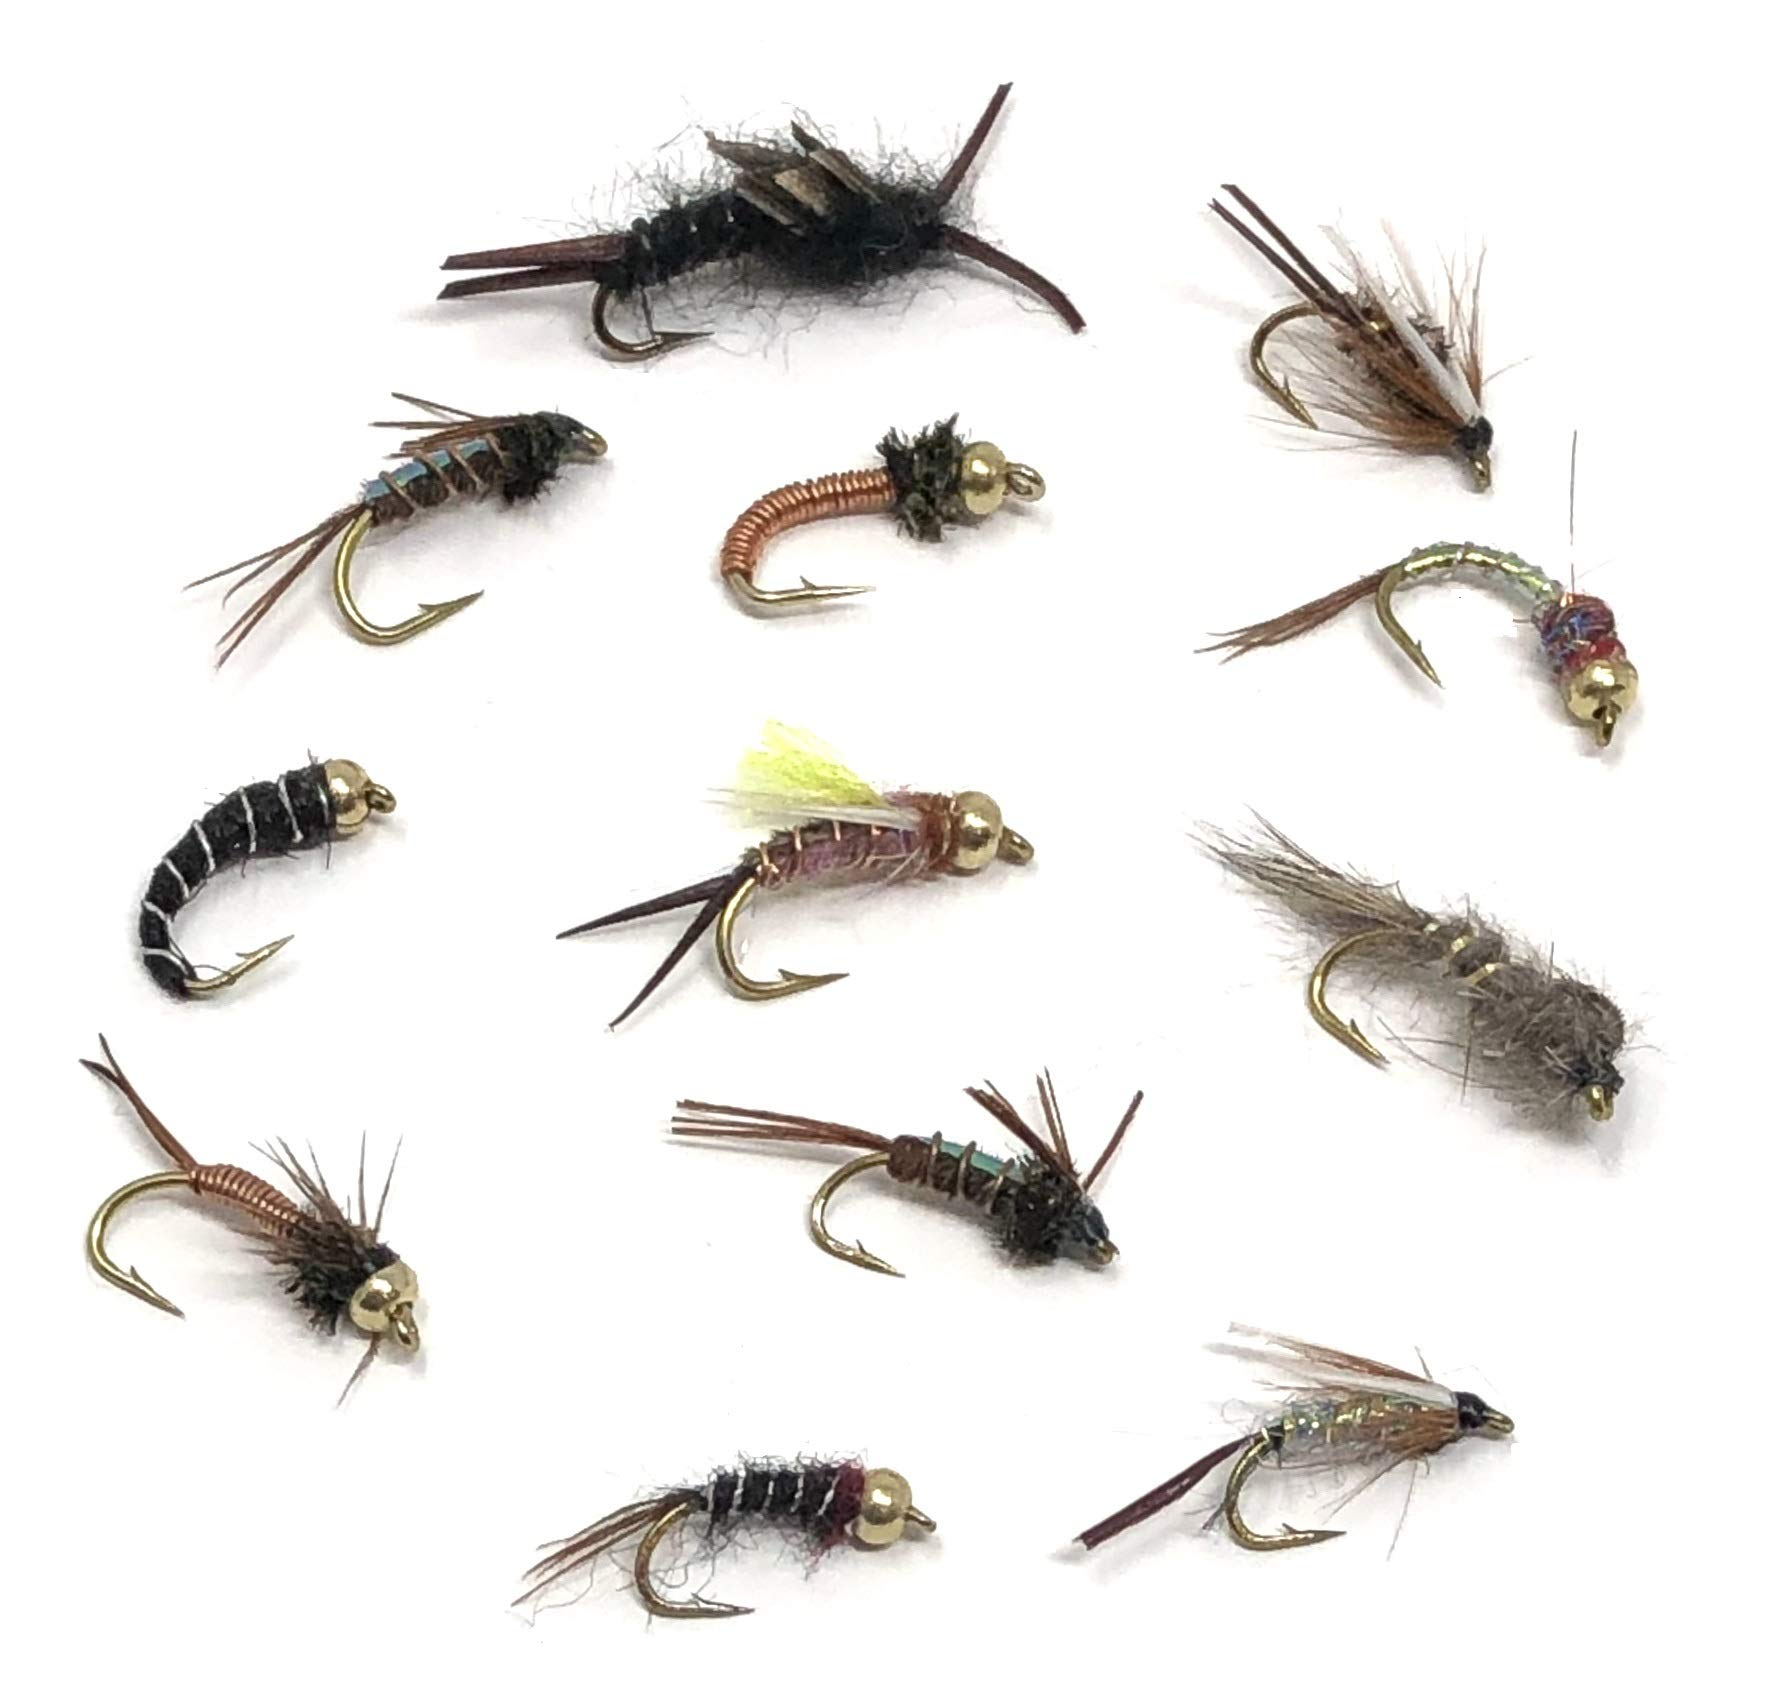 Feeder Creek Fly Fishing Nymph Assortment - 72 Flies in 12 Trout Crushing Wet Patterns (Black Stonefly, Prince, Pheasant Tail, Brassie, and More) Sizes 12-16